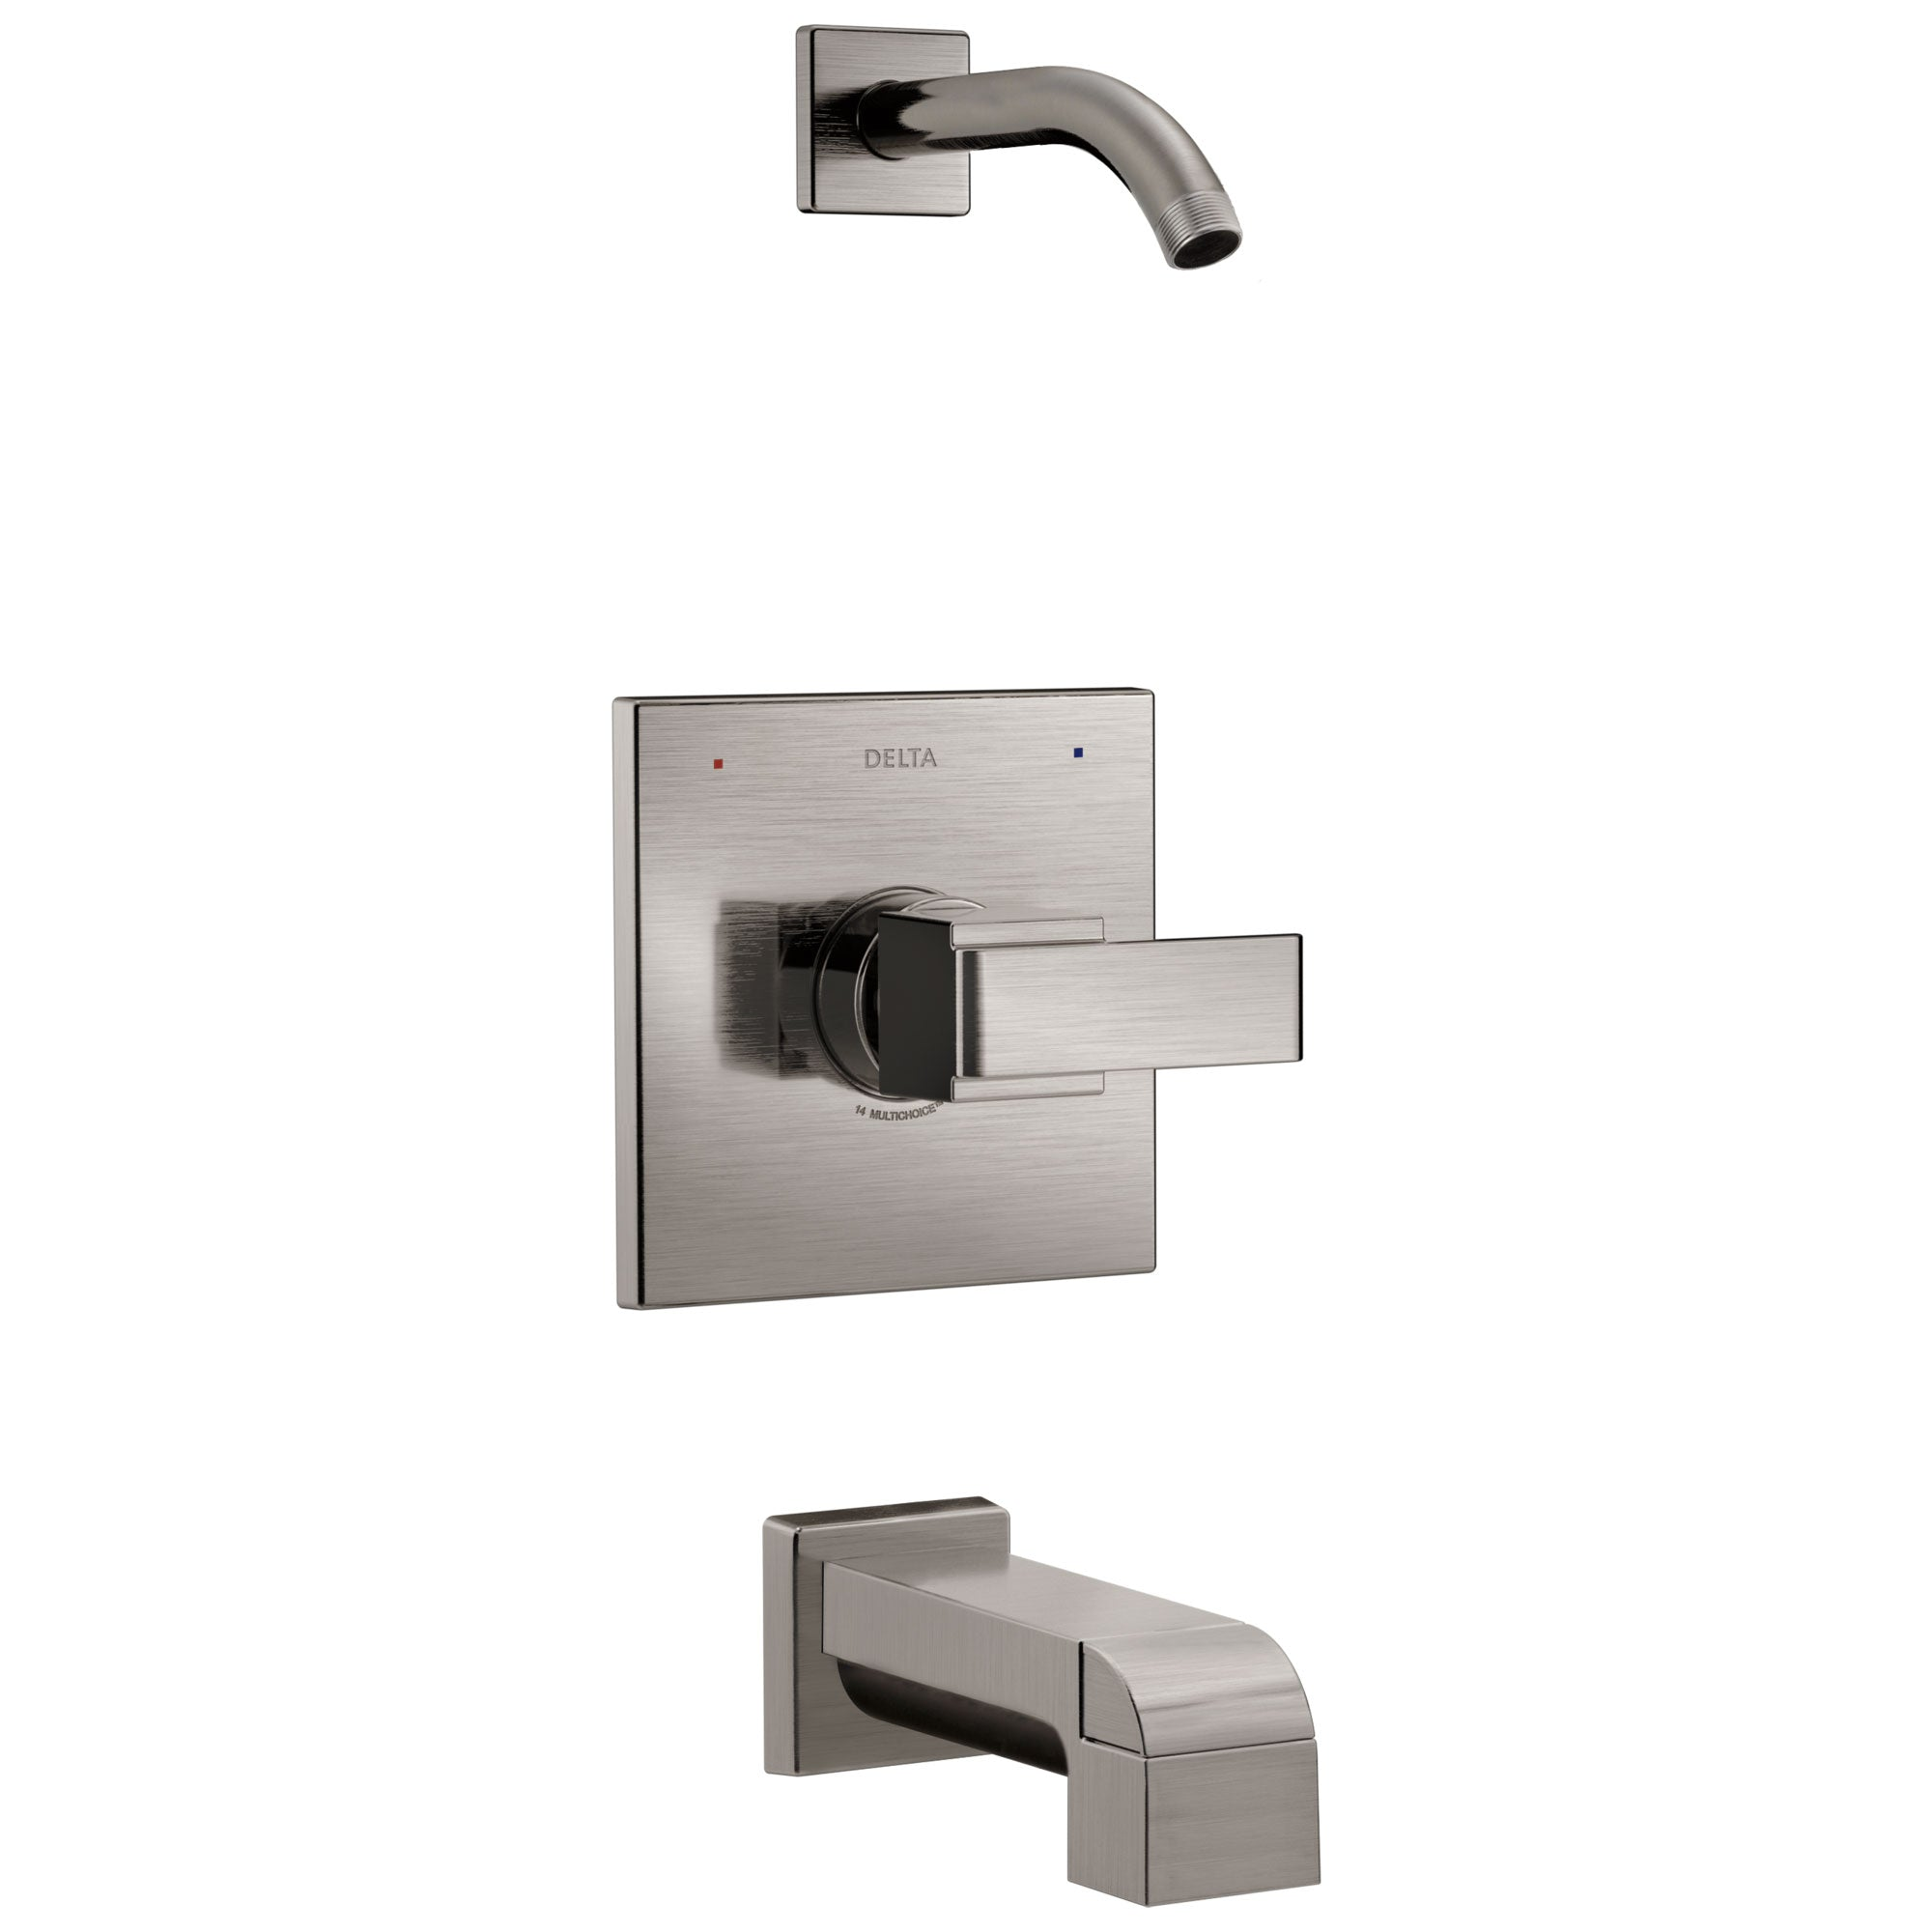 Delta Ara 1-Handle Tub and Shower Faucet Trim Kit in Stainless Steel Finish with Less Showerhead Includes Rough-in Valve with Stops D2565V